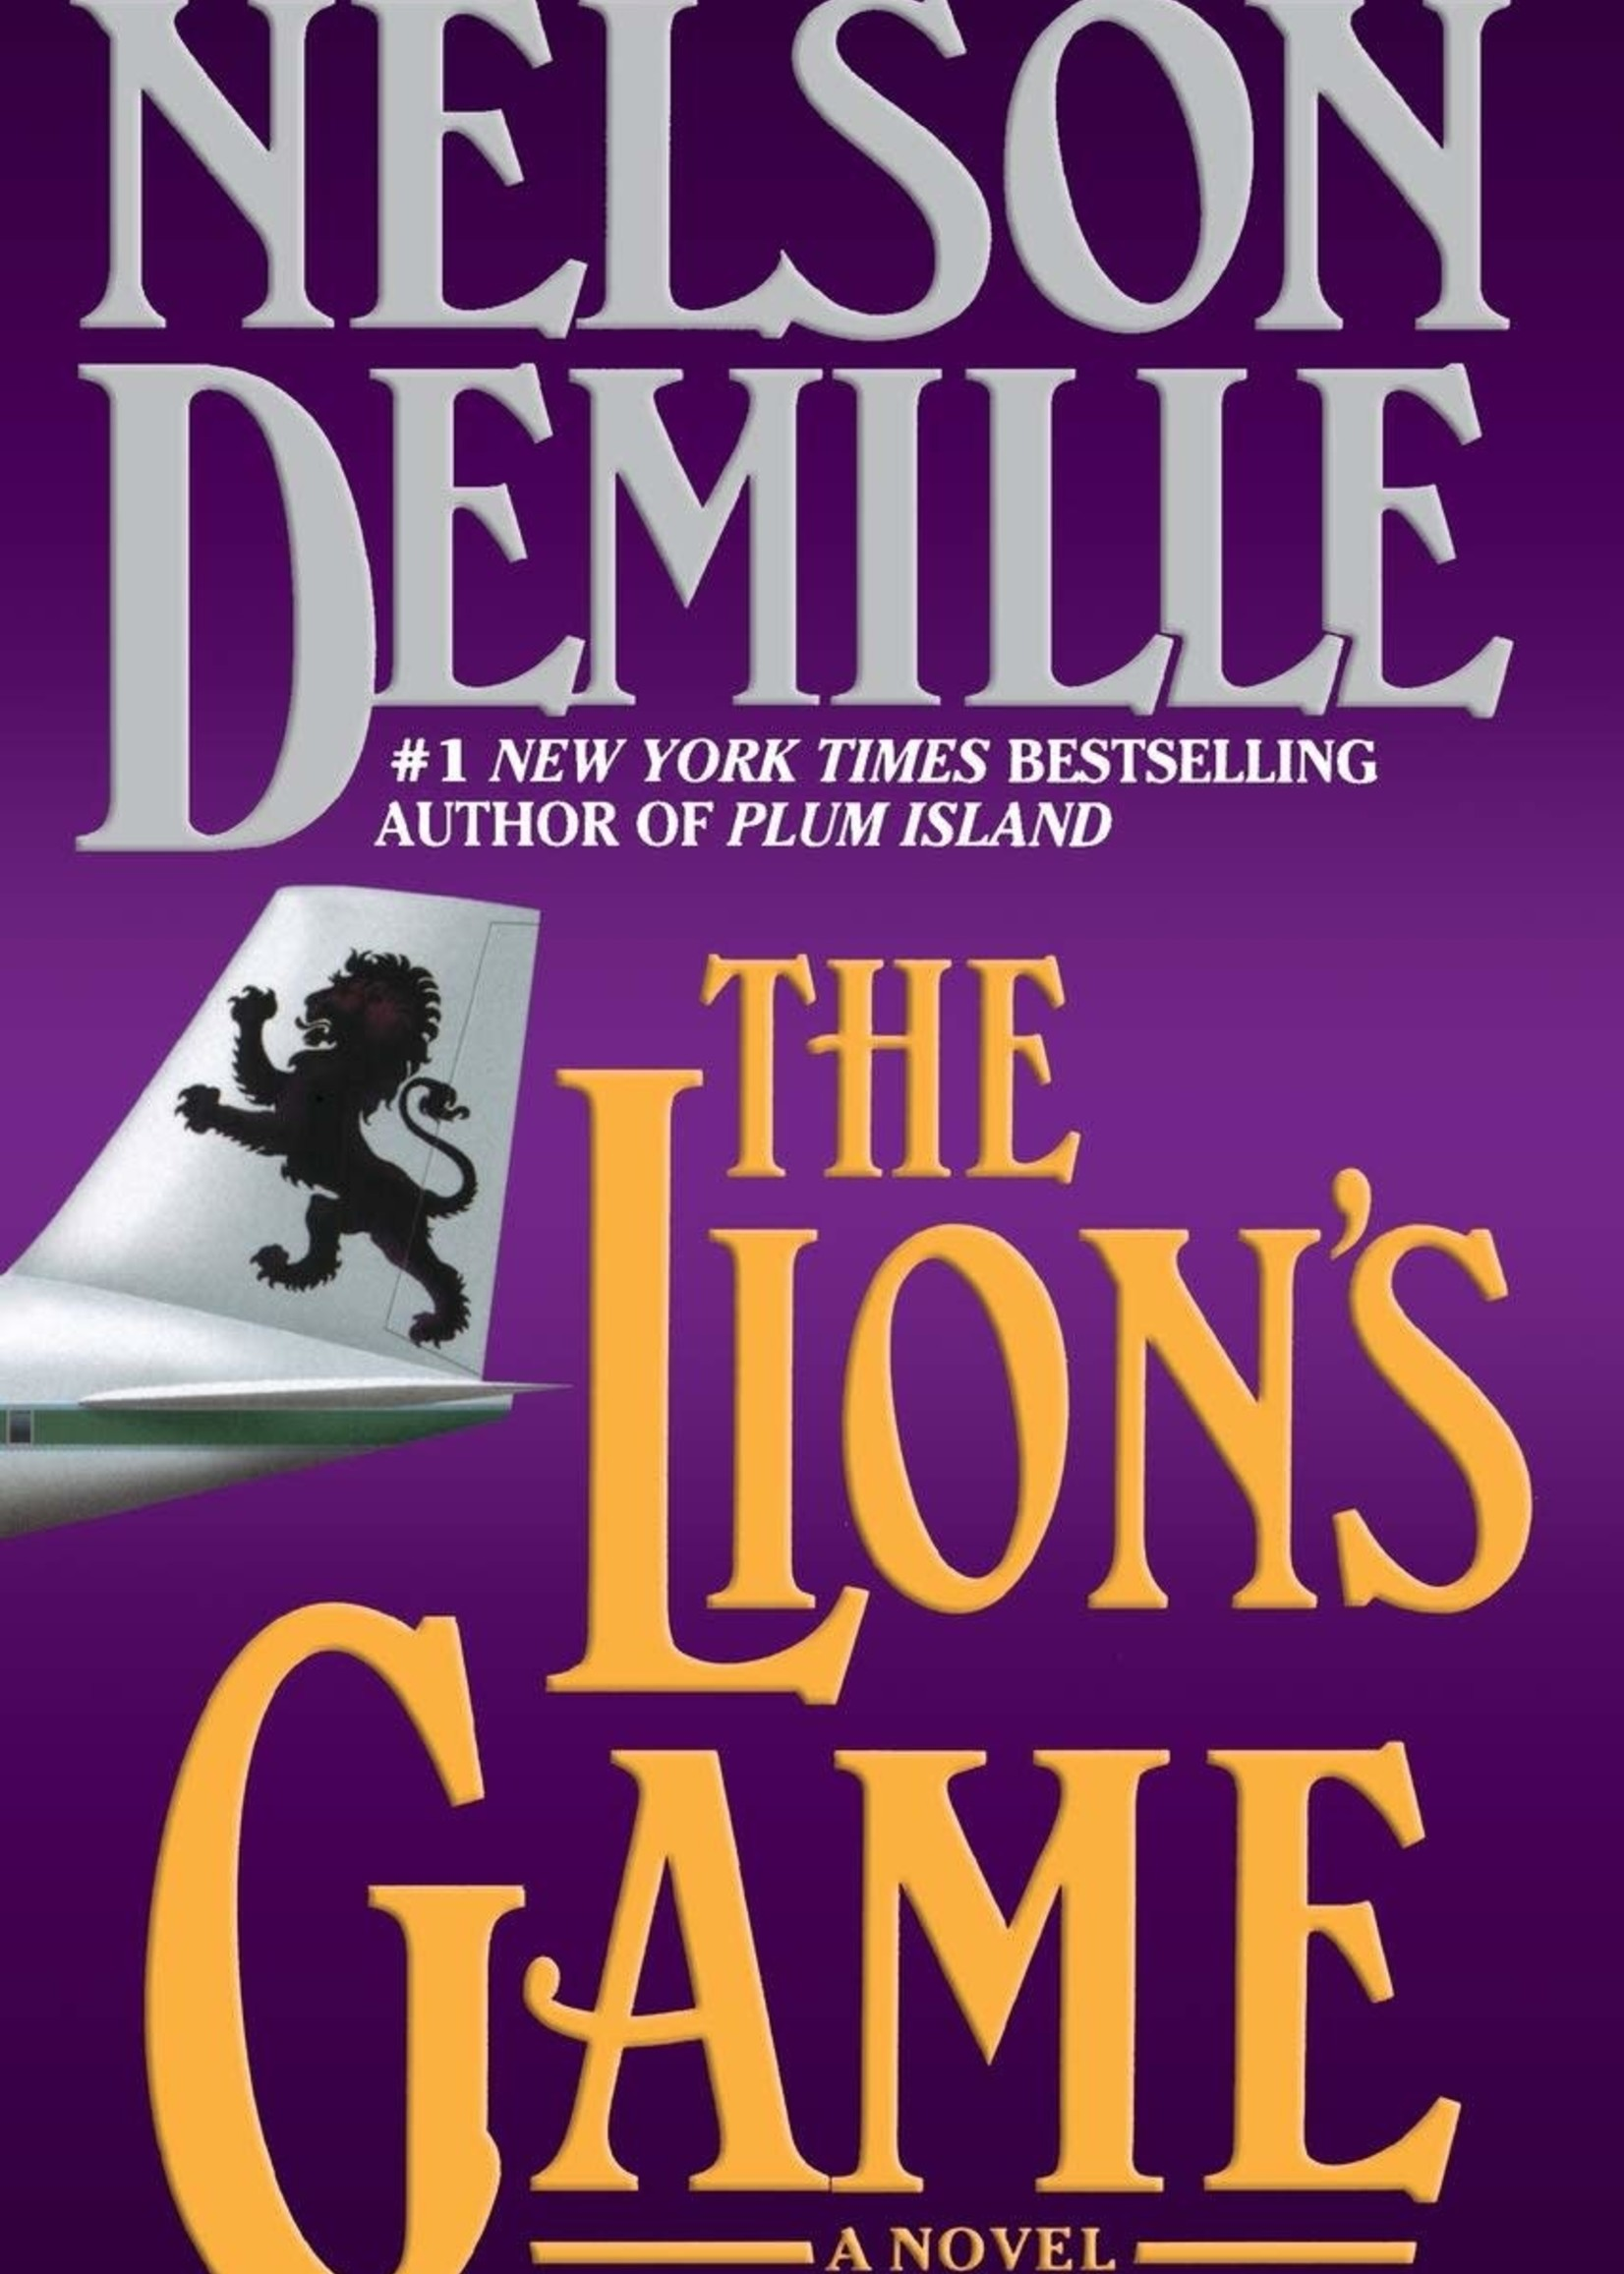 USED - The Lion's Game by Nelson DeMille